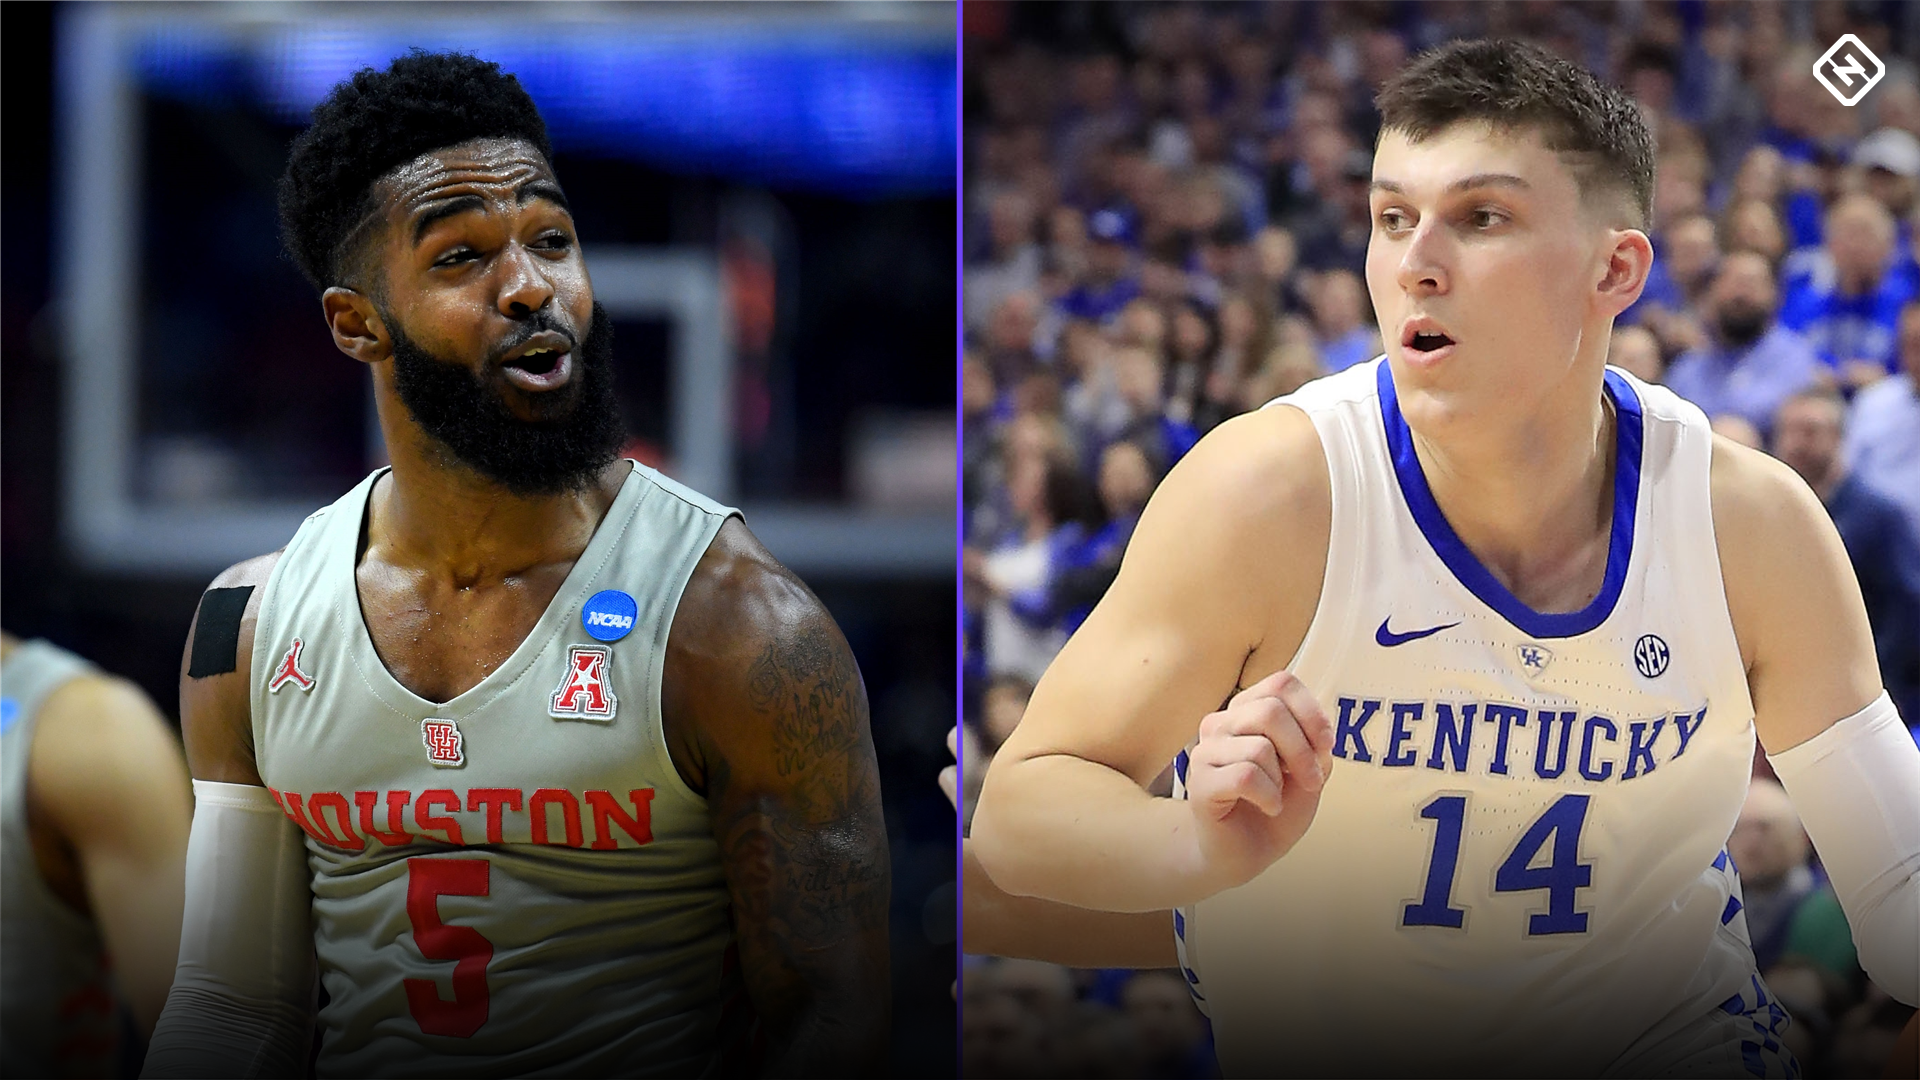 NCAA Regional Semi-Final: Houston vs Kentucky Preview and Prediction